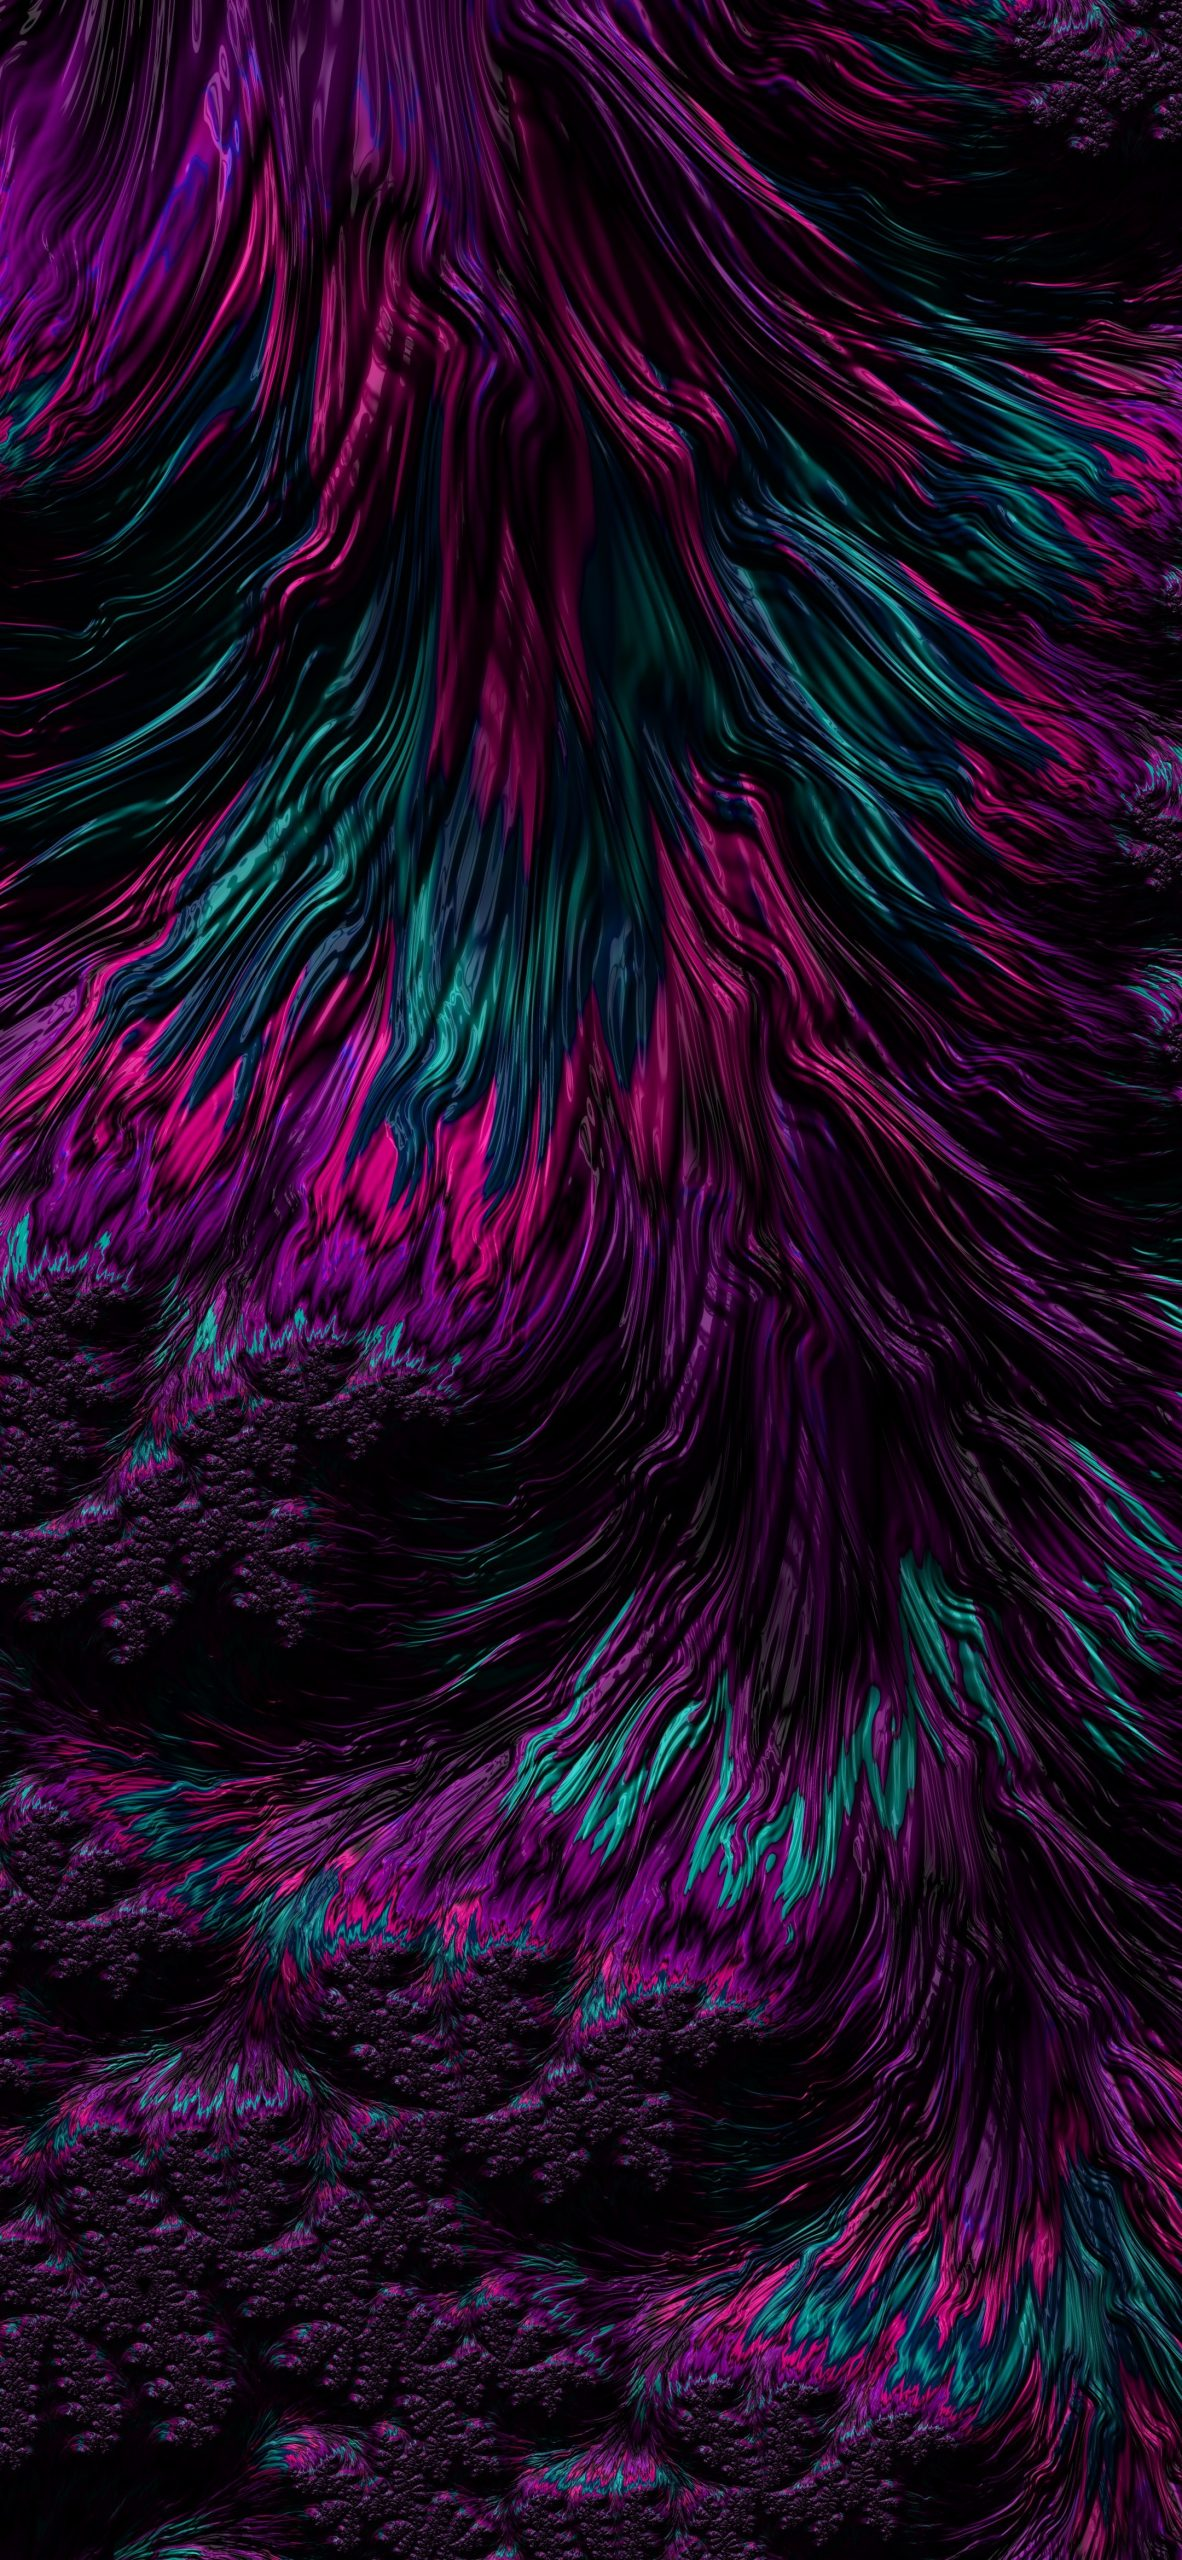 A repeating pattern in purple turquoise black and pink. It is purely decorative